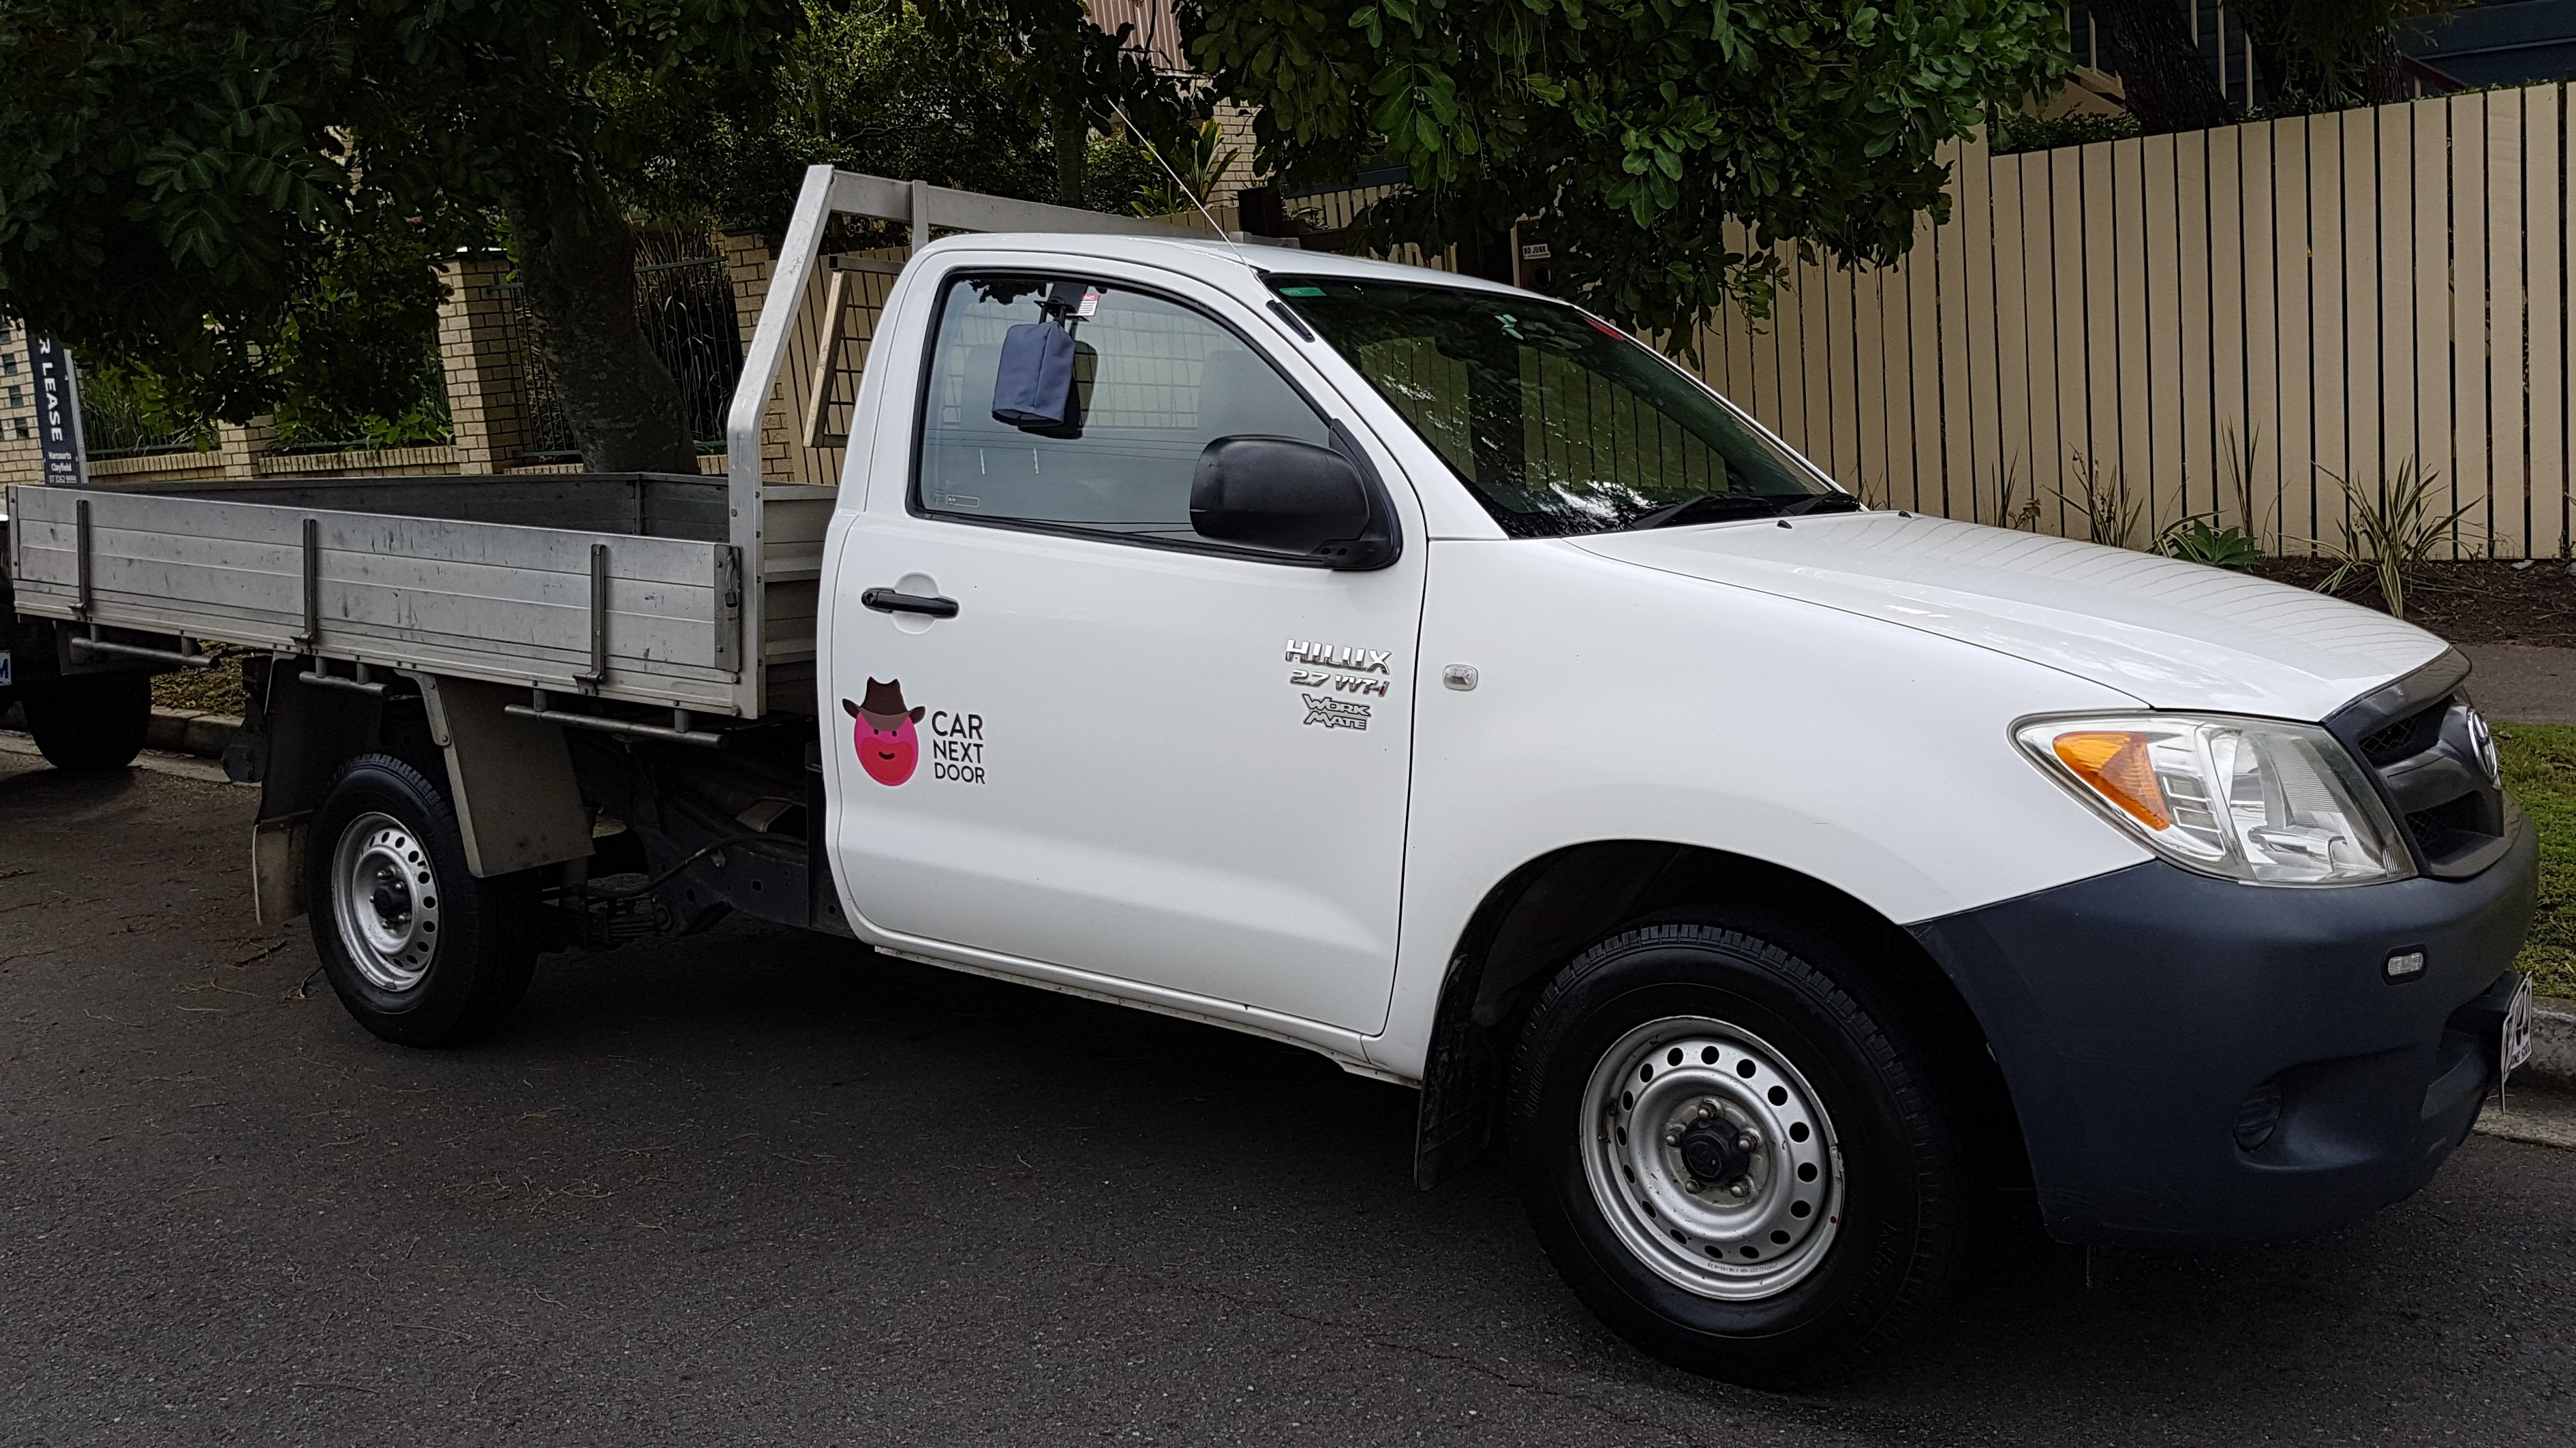 Picture of Edvin's 2008 Toyota Hilux